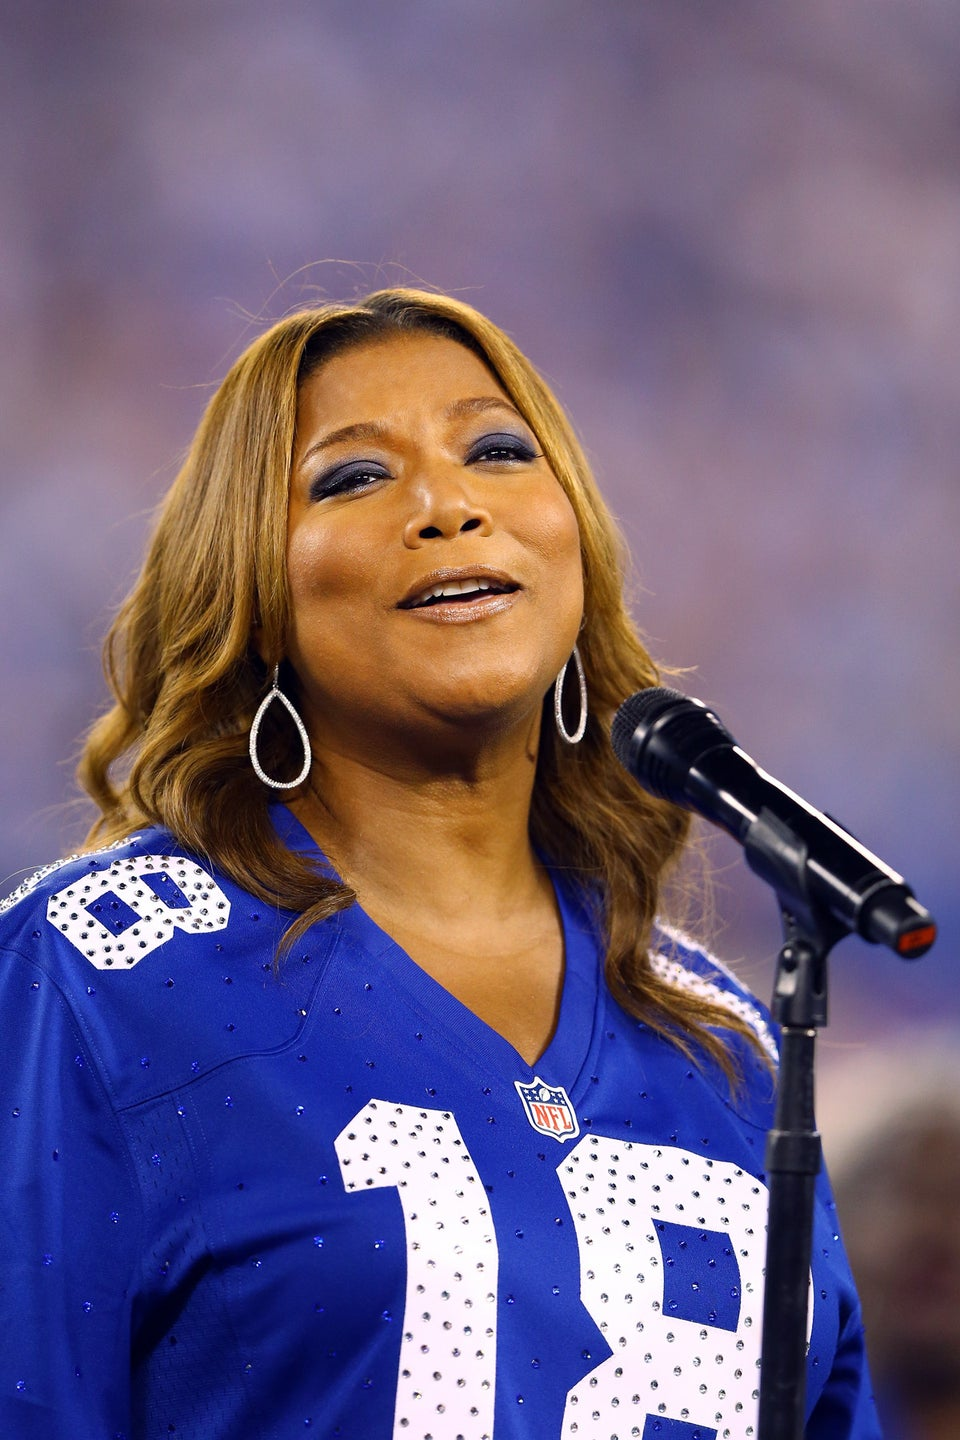 Must-See: Check Out Queen Latifah's Jazzy Rendition of the National Anthem